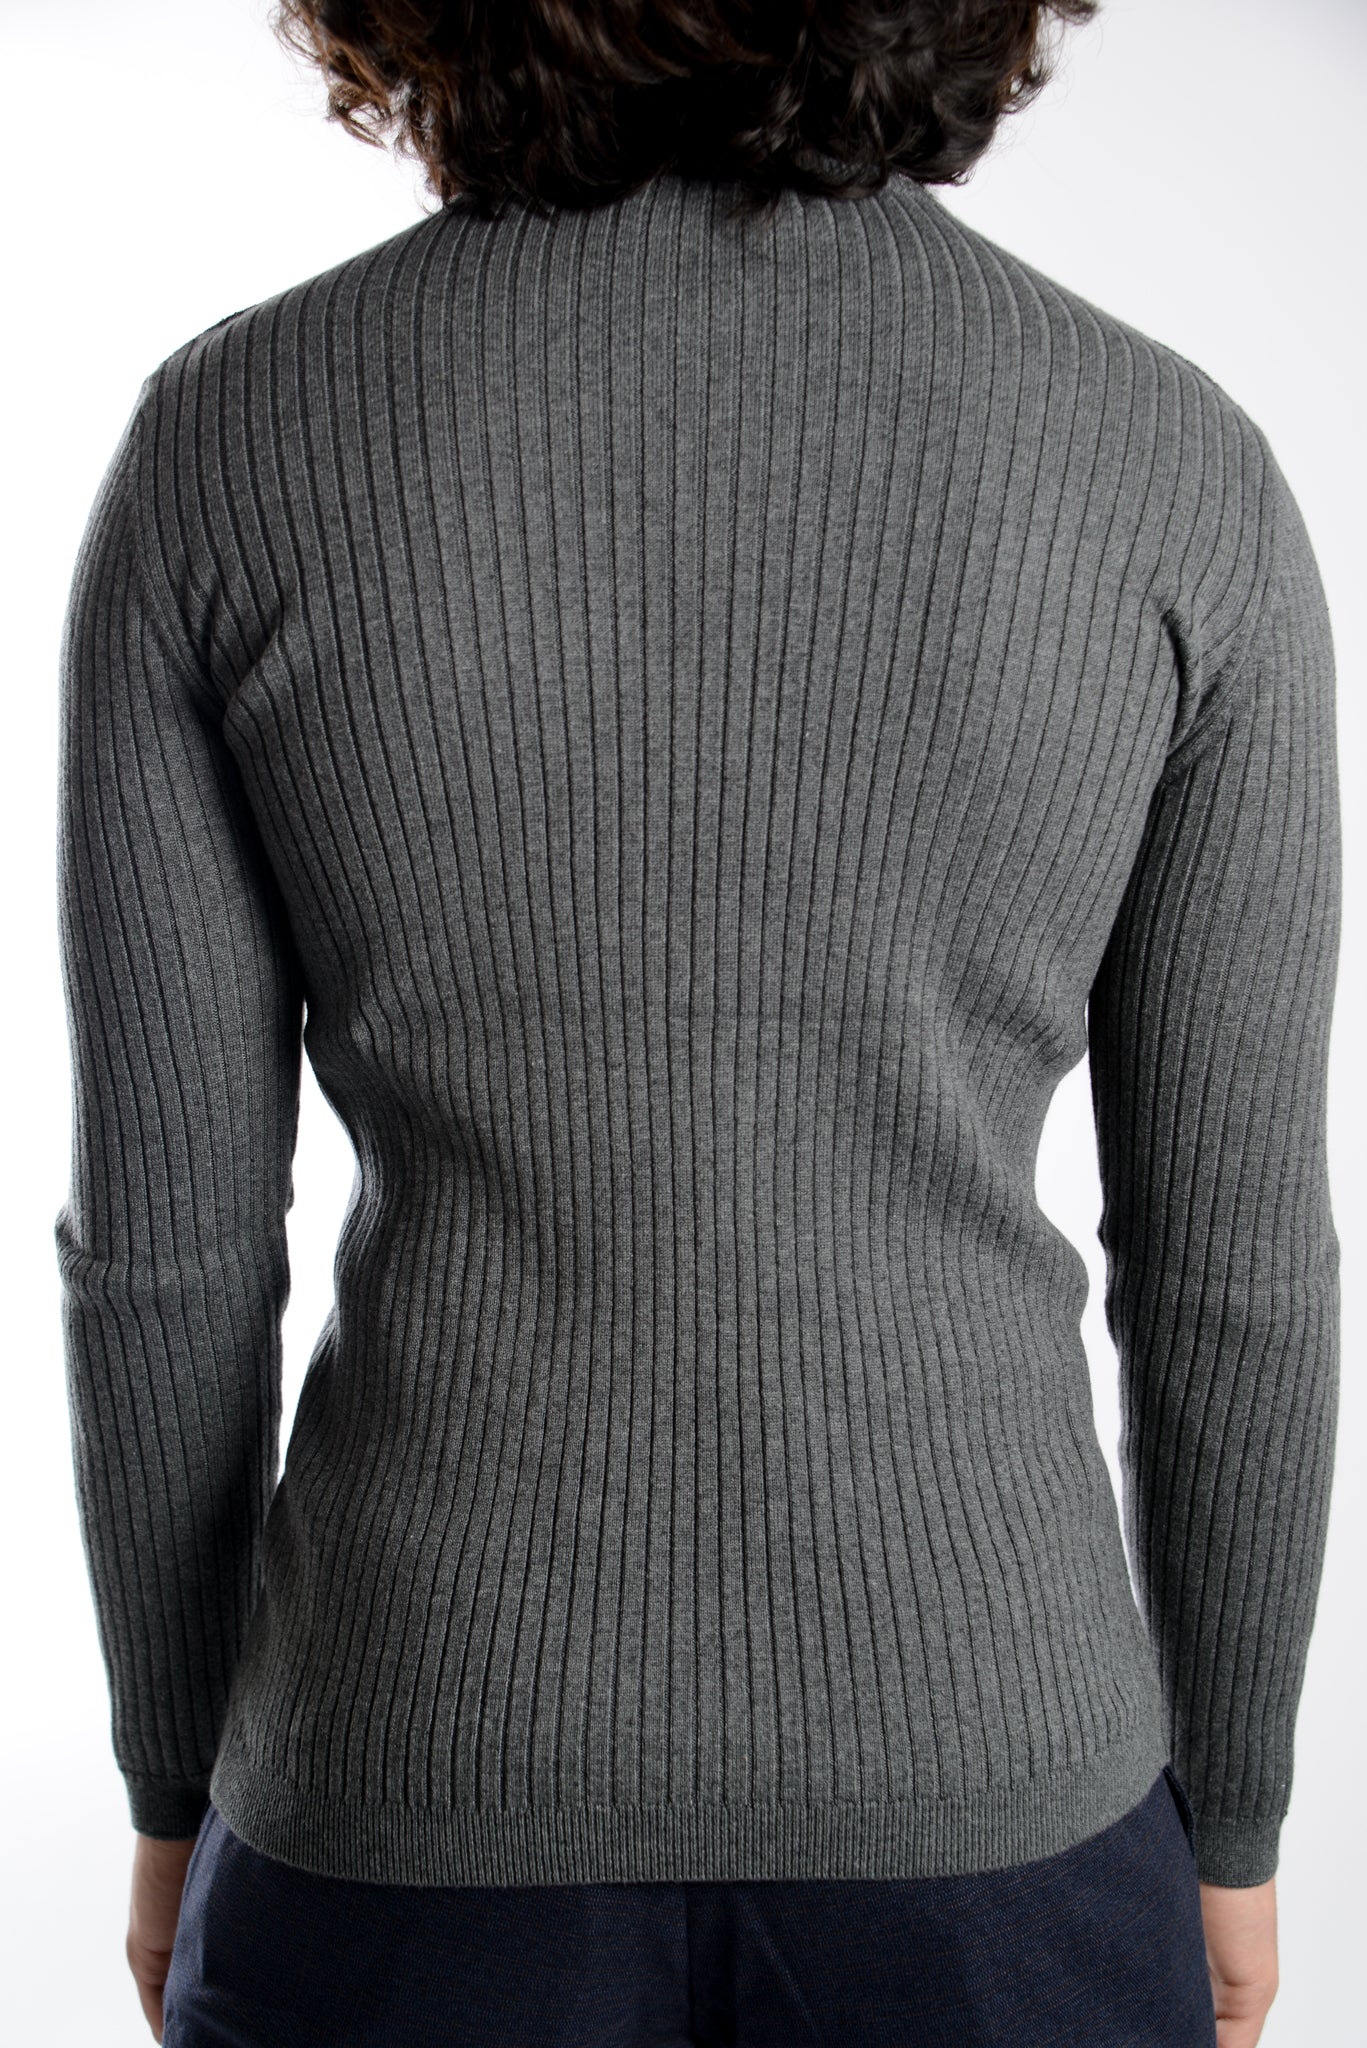 Leeds Slim Fit Mockneck Euro Sweater